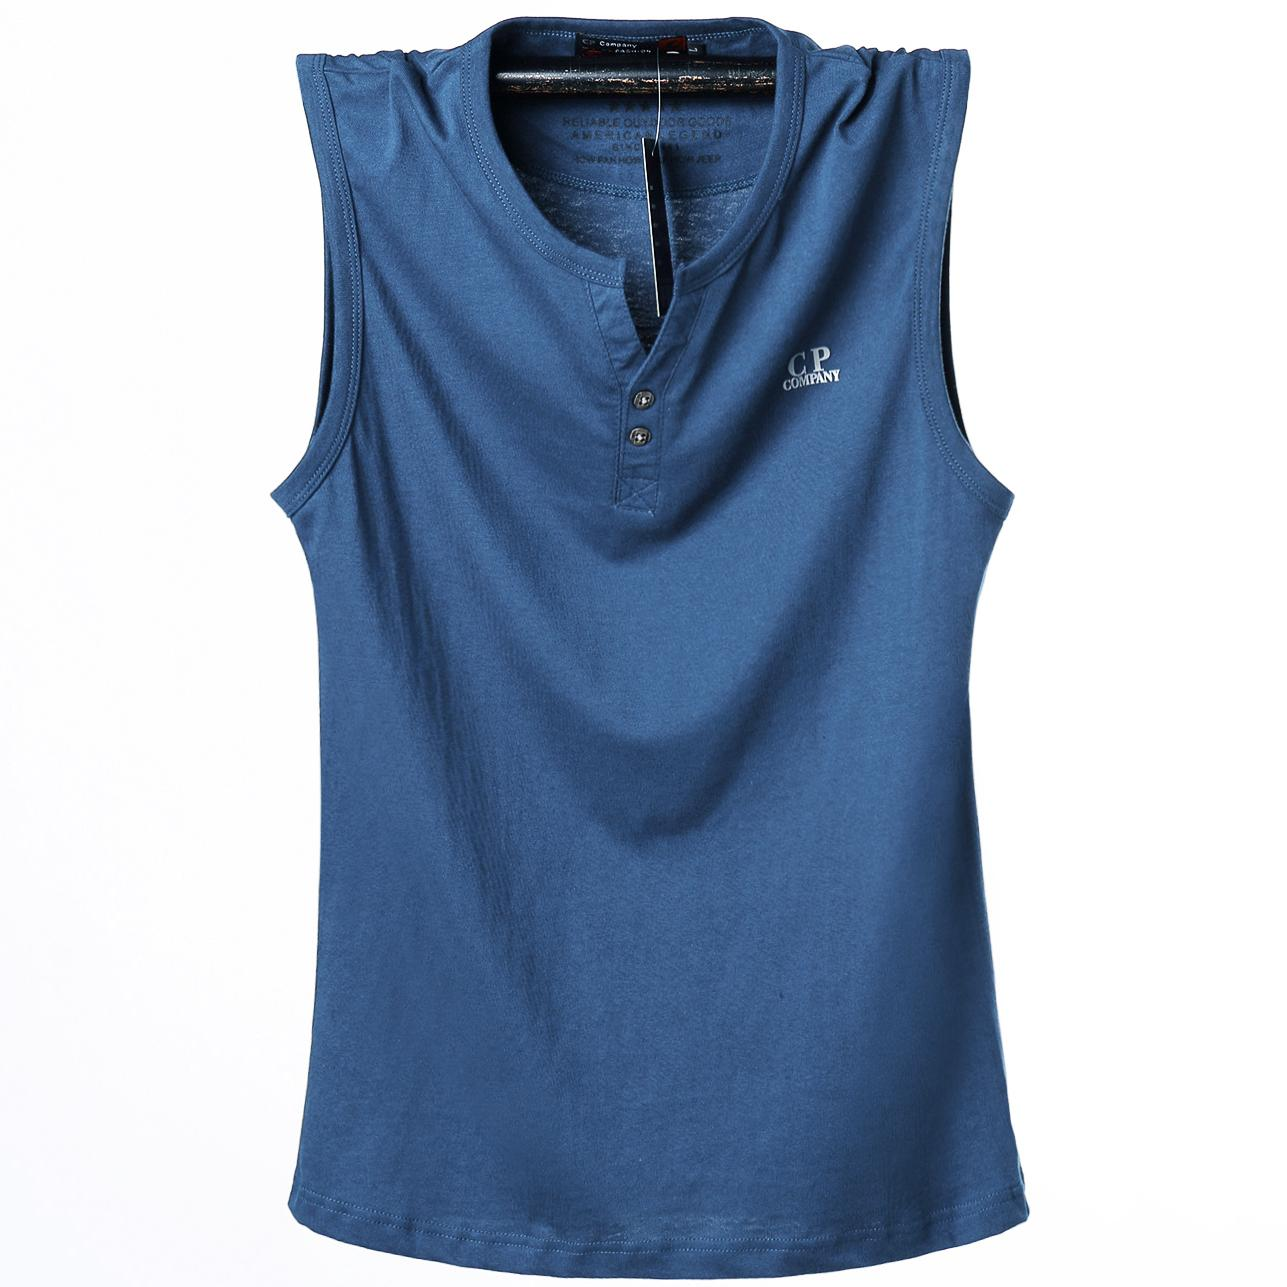 a542189d506630 2019 Summer Tank Tops Cotton Men  S Plus Size Vest Breathable Solid  Sleeveless Fitness Men Vest Big And Tall Male L 6xl Blue Gray From  Clothingdh